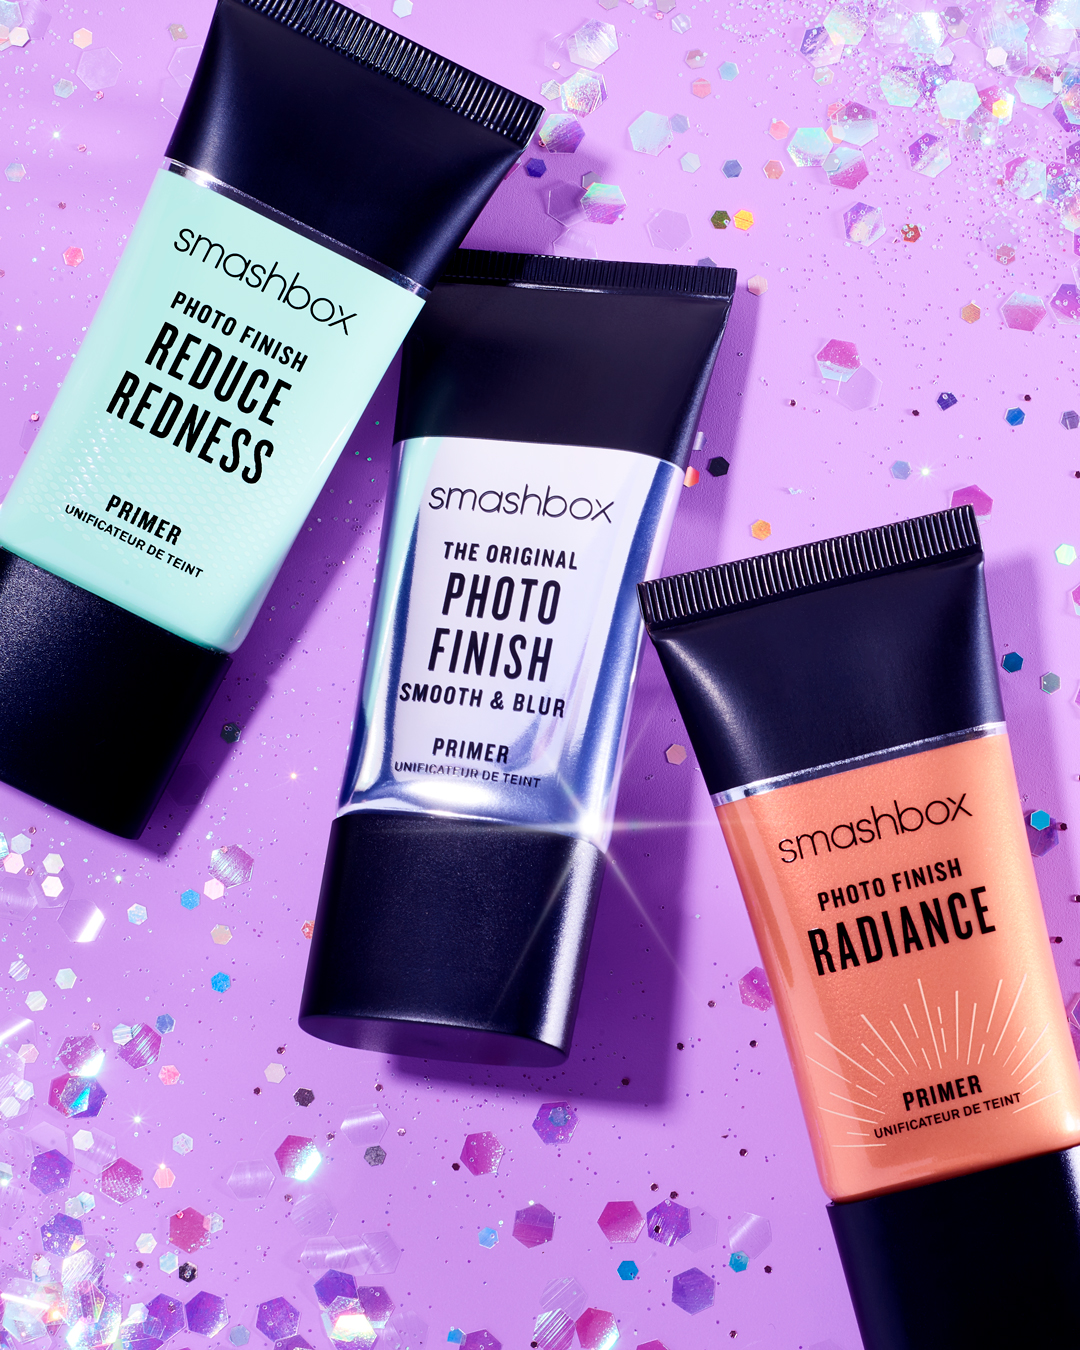 04-10-2018-Social-Instagram-Smashbox-Primers-Retouched.jpg